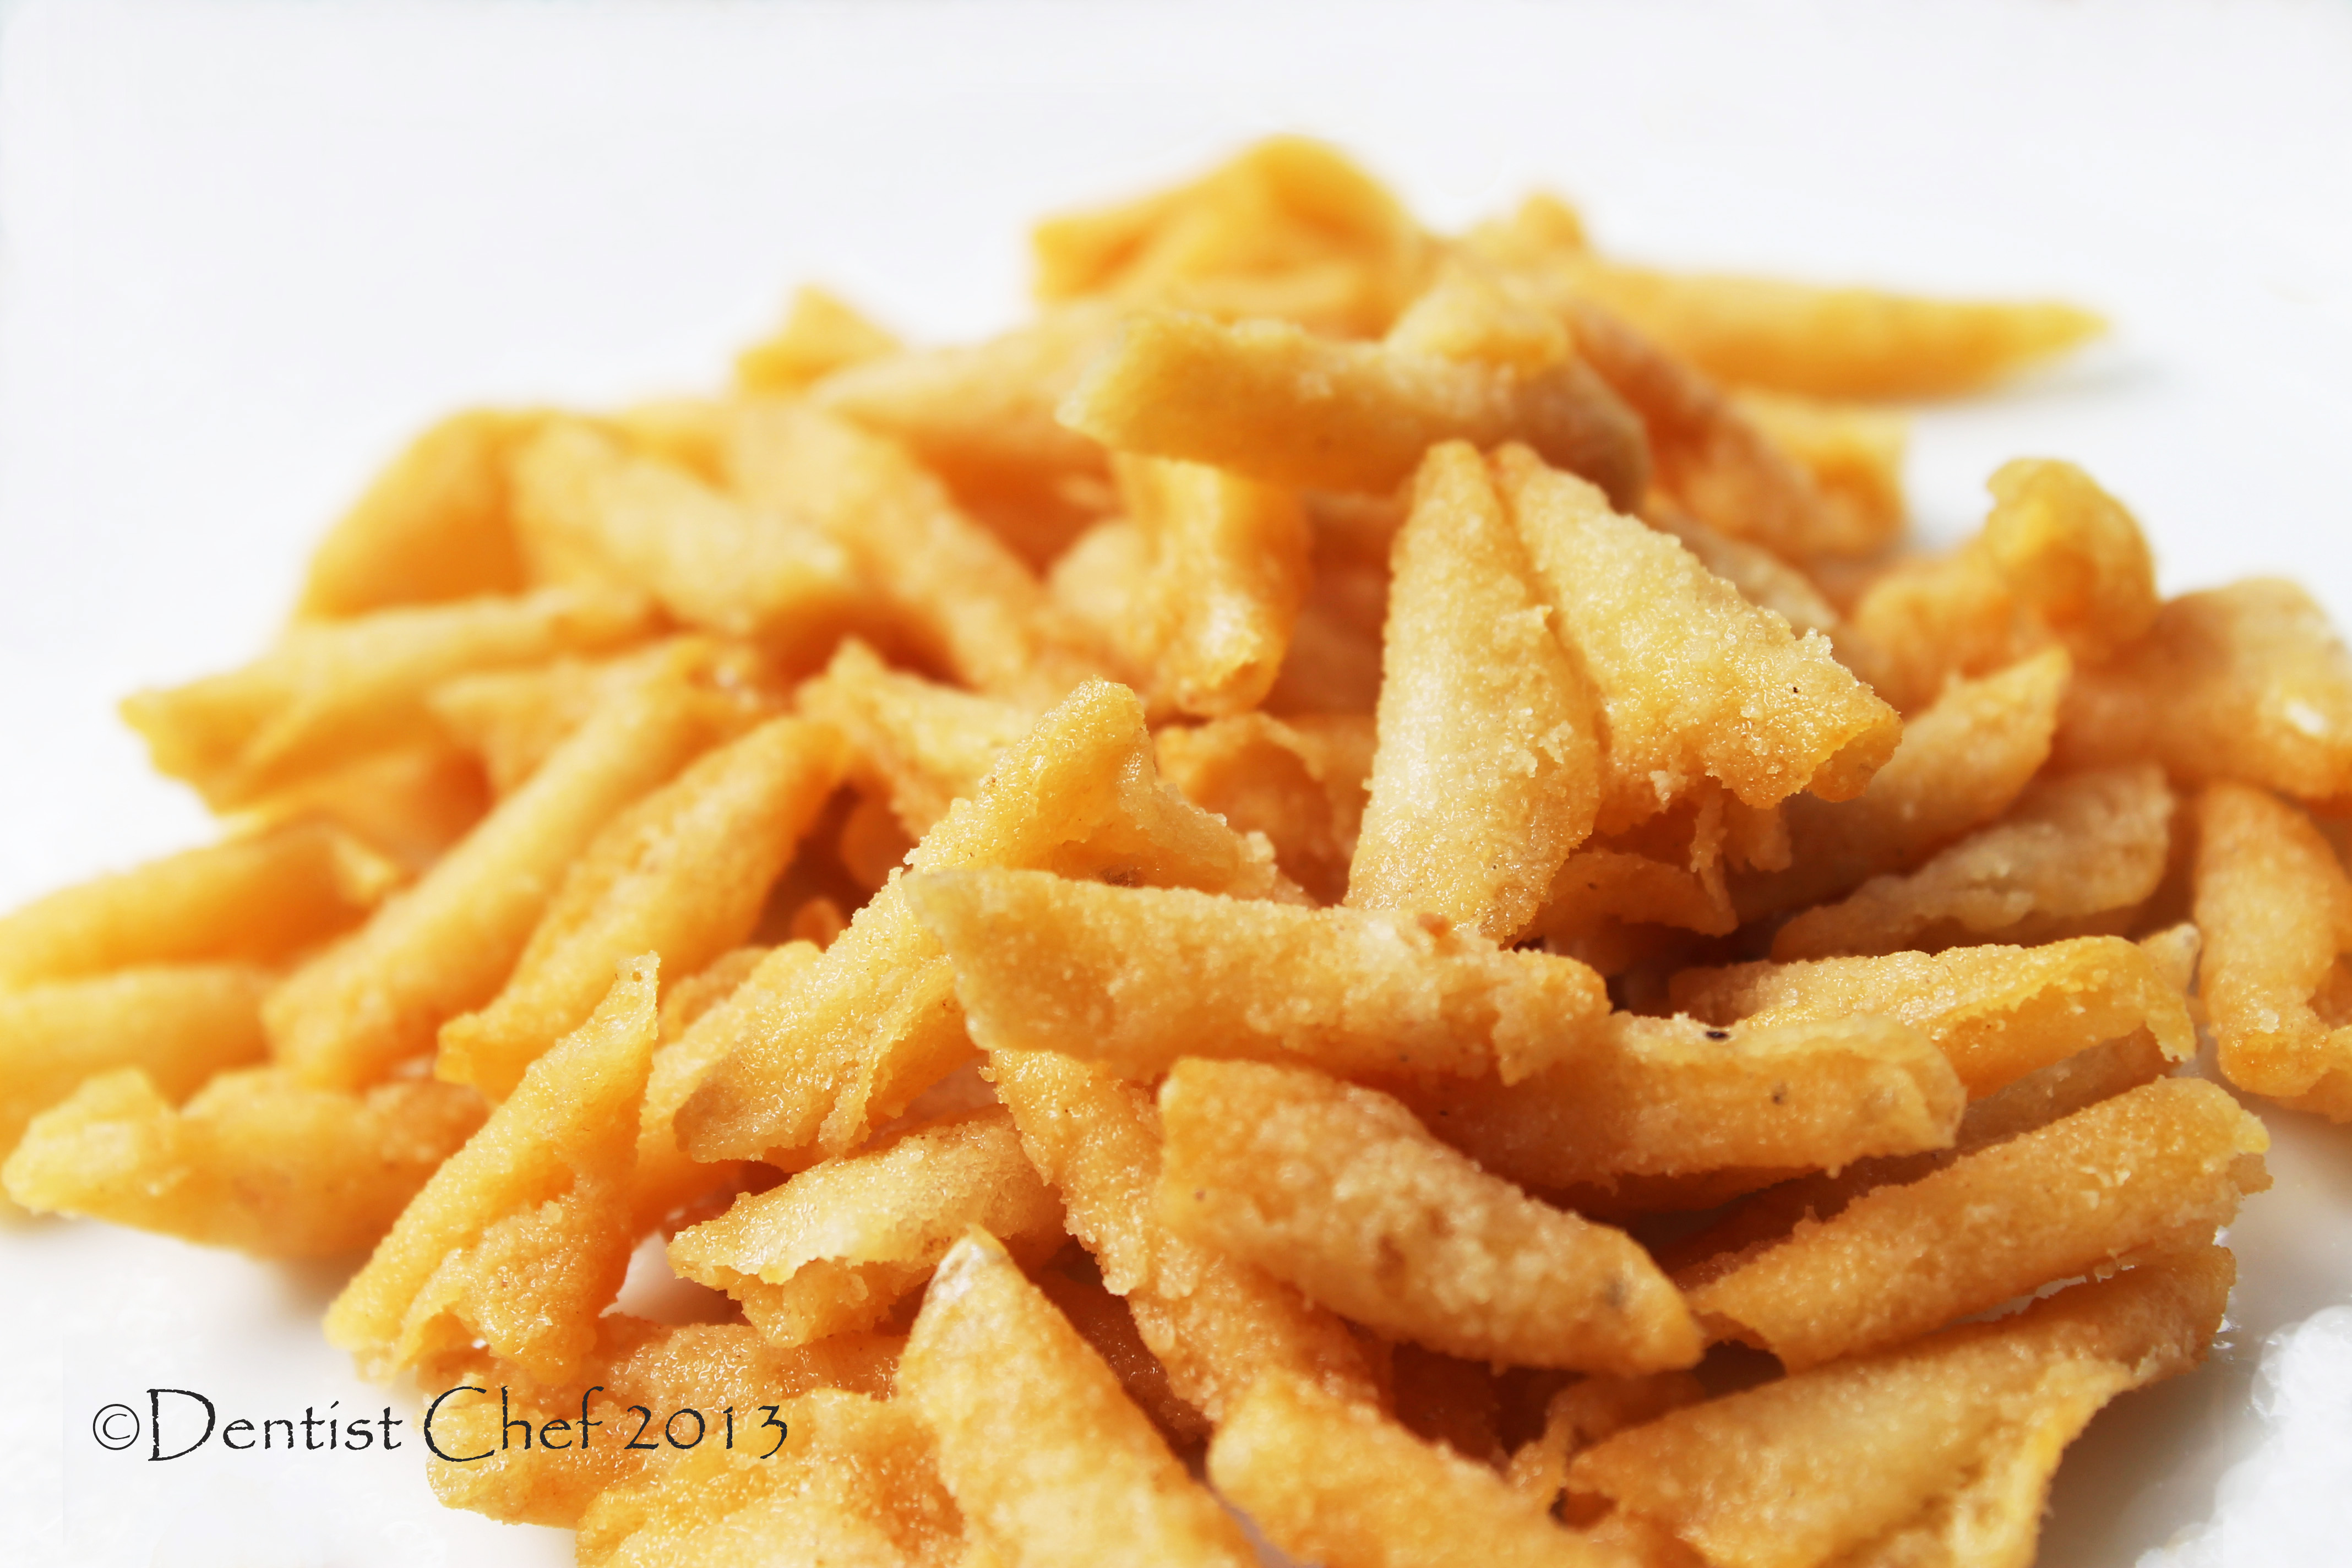 Deep fried fish scales recipe crispy and crunchy snack for Deep fried fish